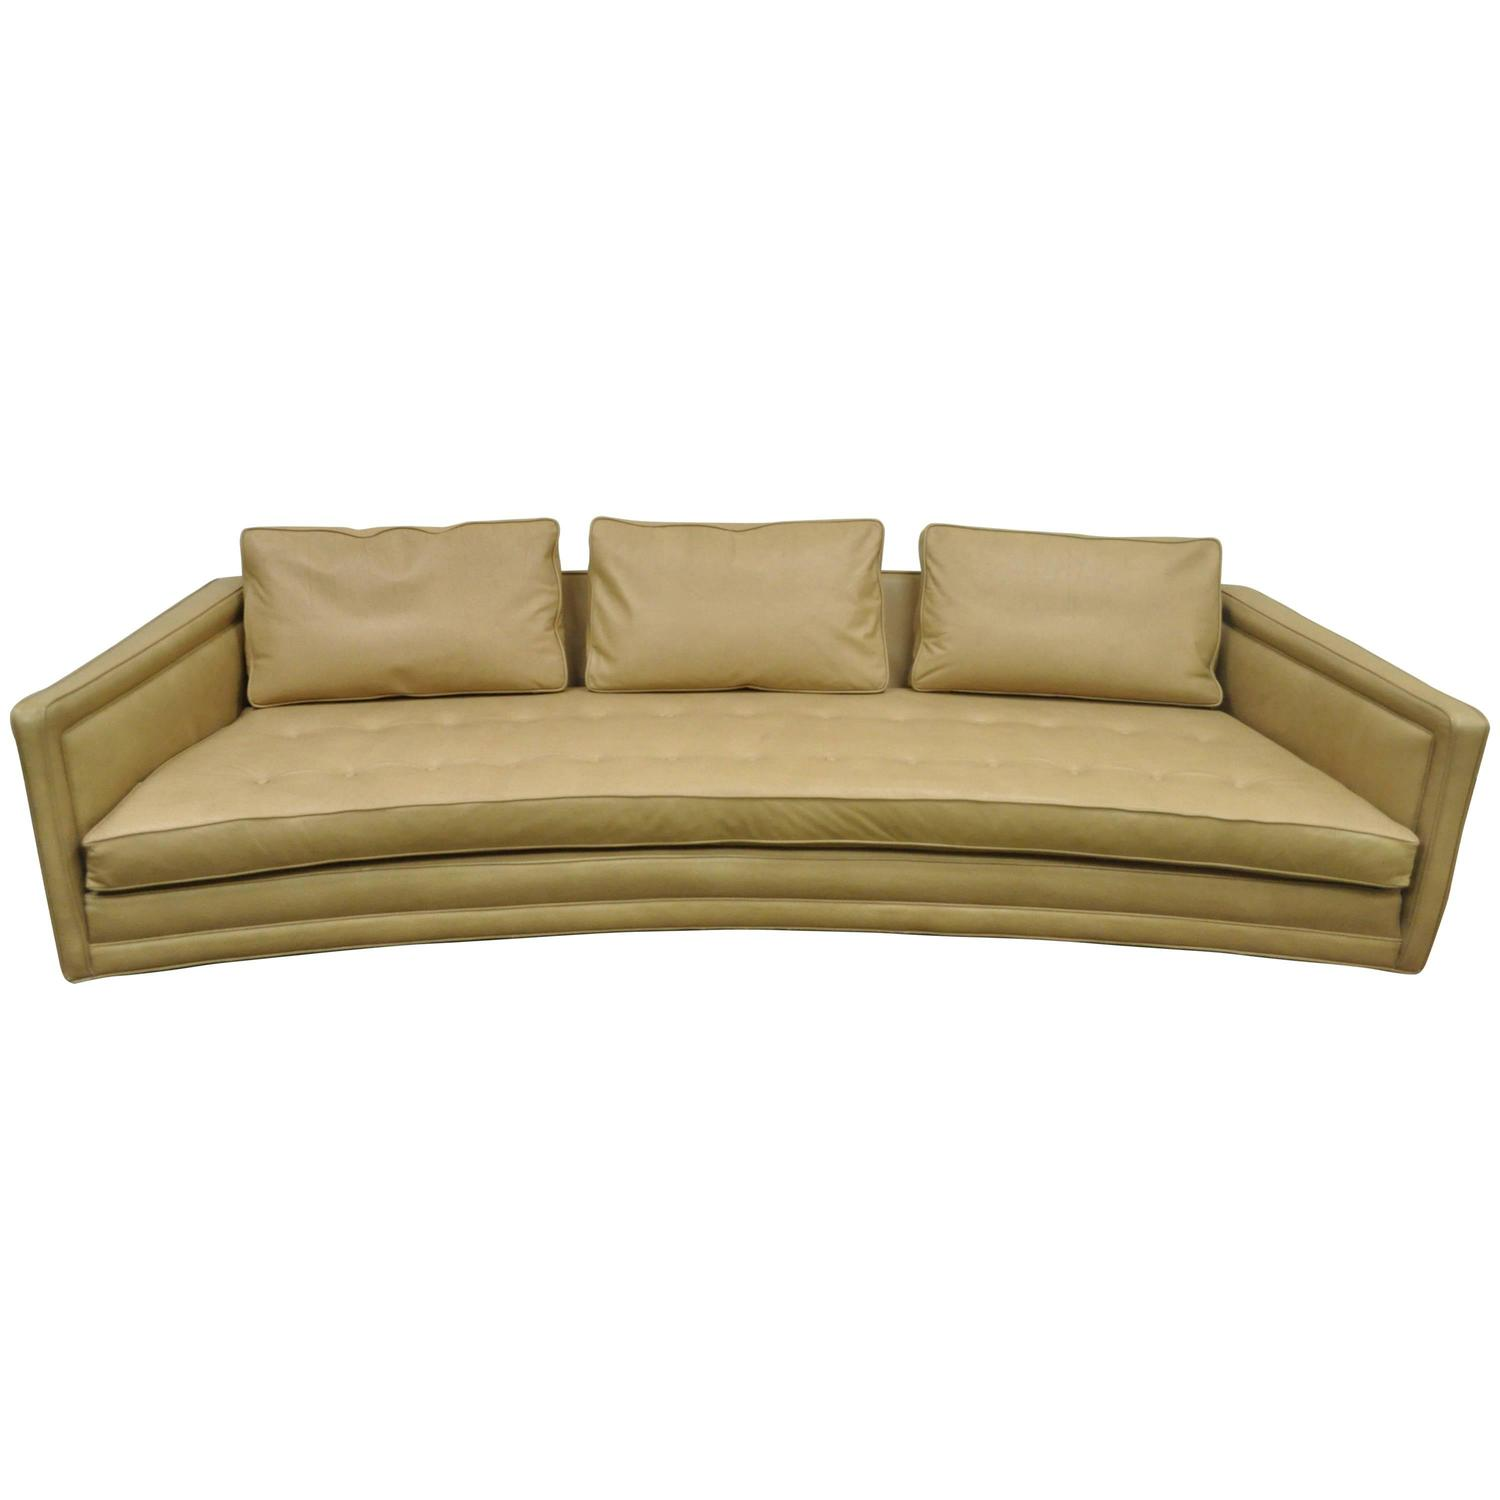 Harvey Probber Sofas 49 For Sale at 1stdibs